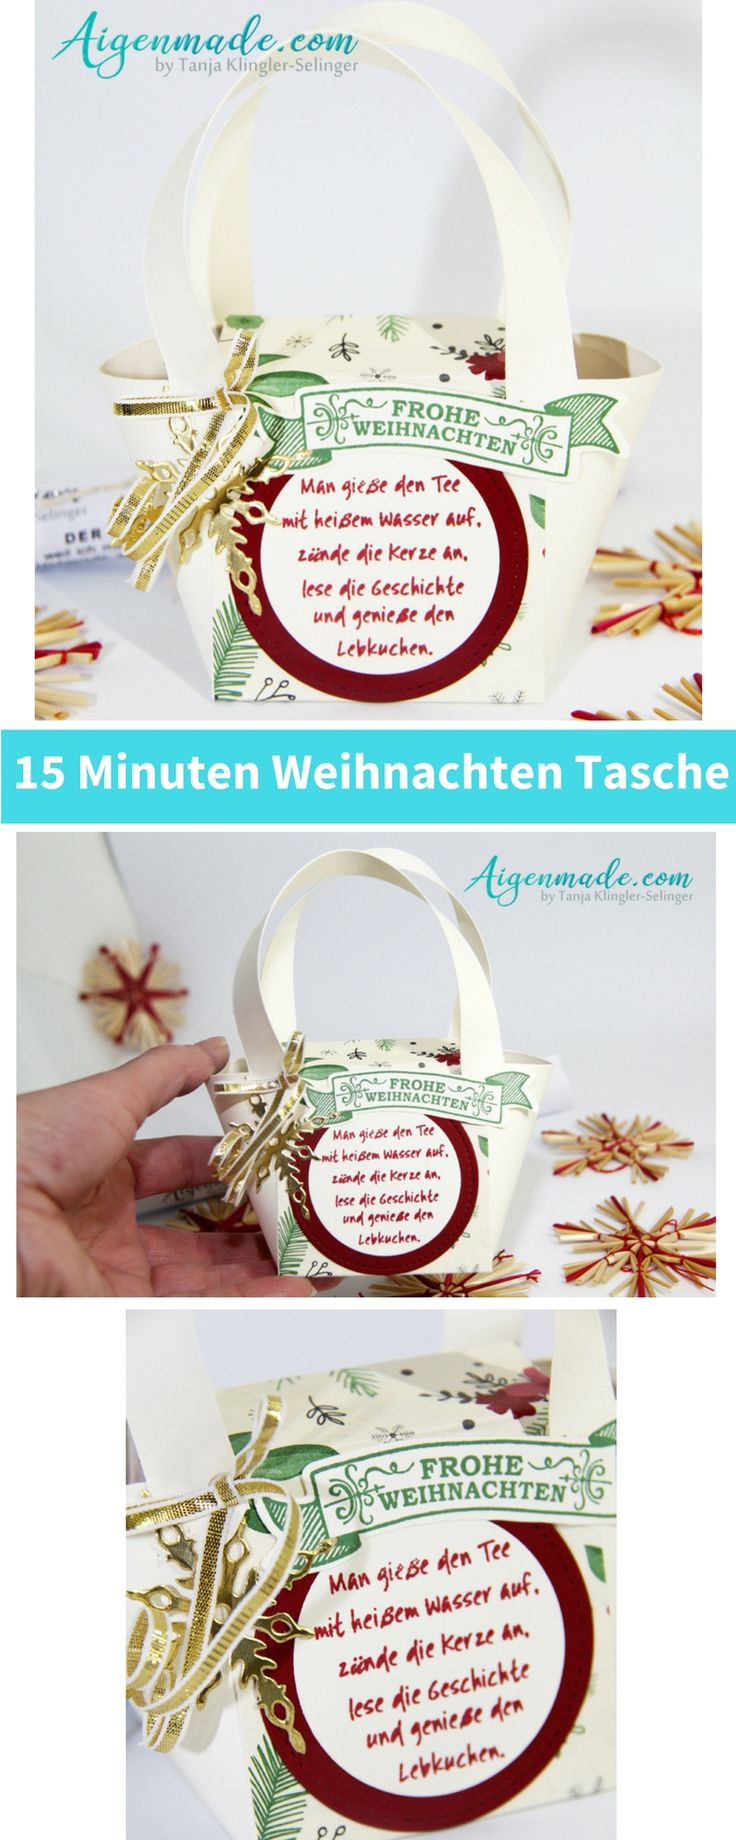 483 best Basteln DIY Kreativideen images on Pinterest